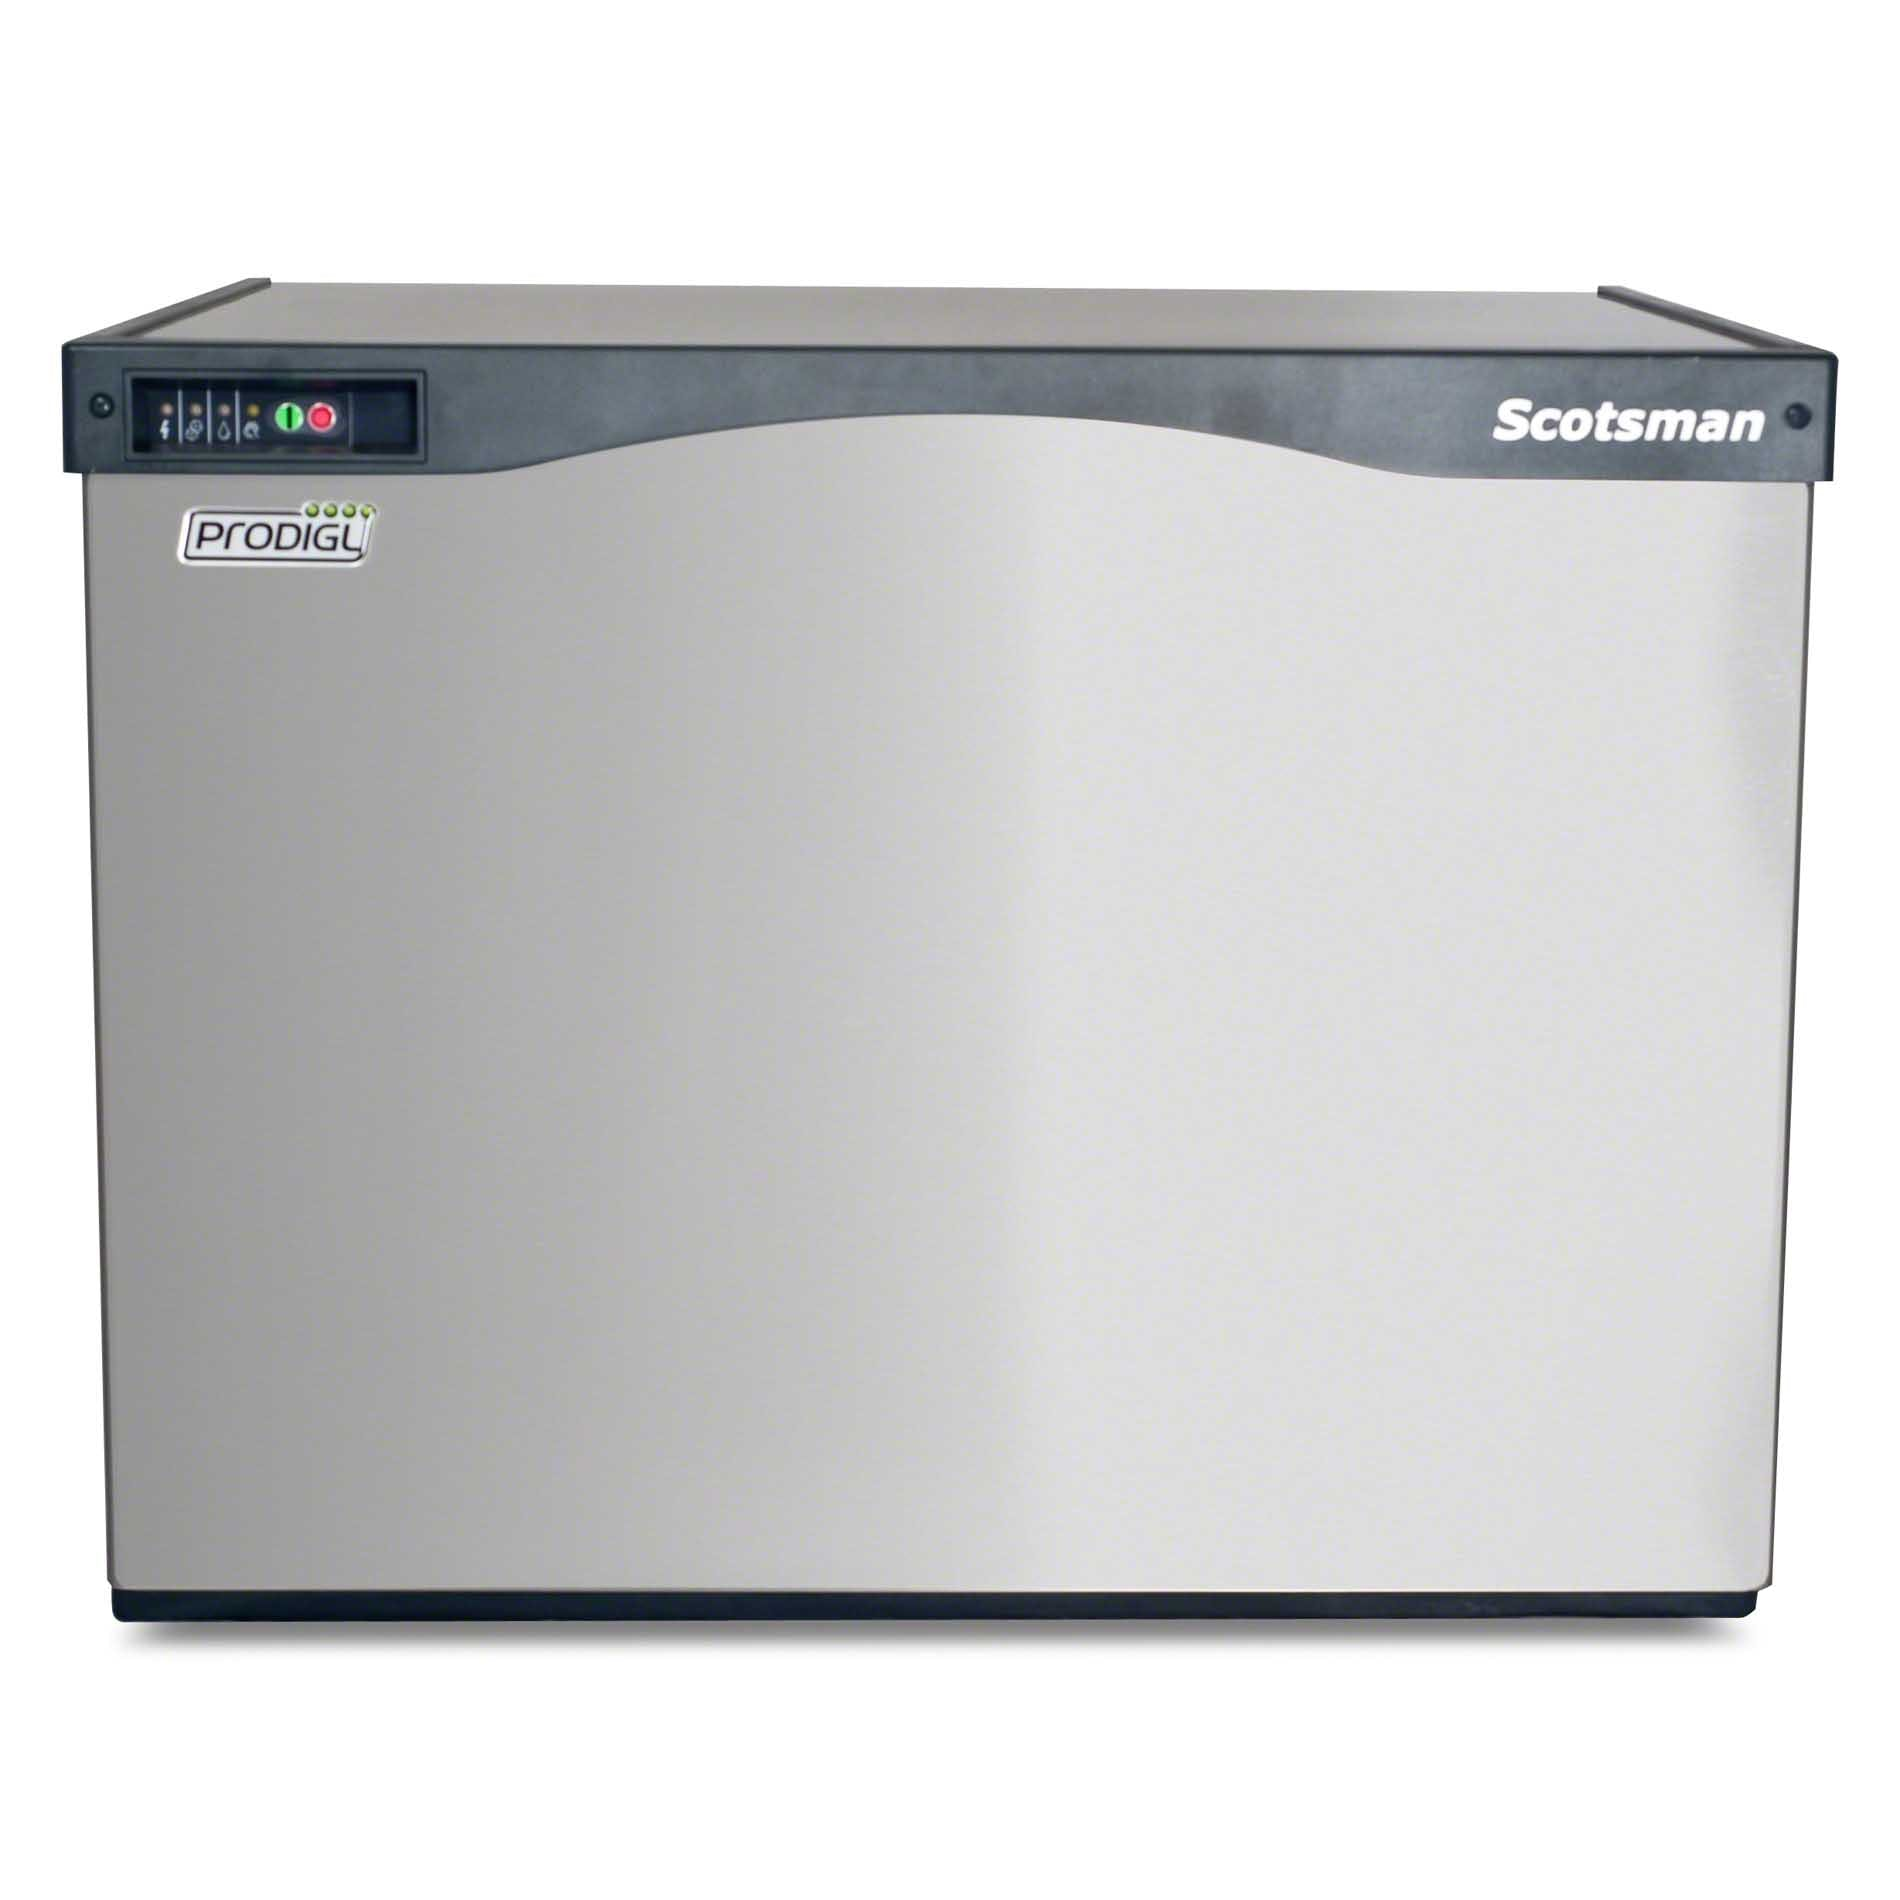 Scotsman - C0530MA-1A 562 lb Full Size Cube Ice Machine - Prodigy Series Ice machine sold by Food Service Warehouse